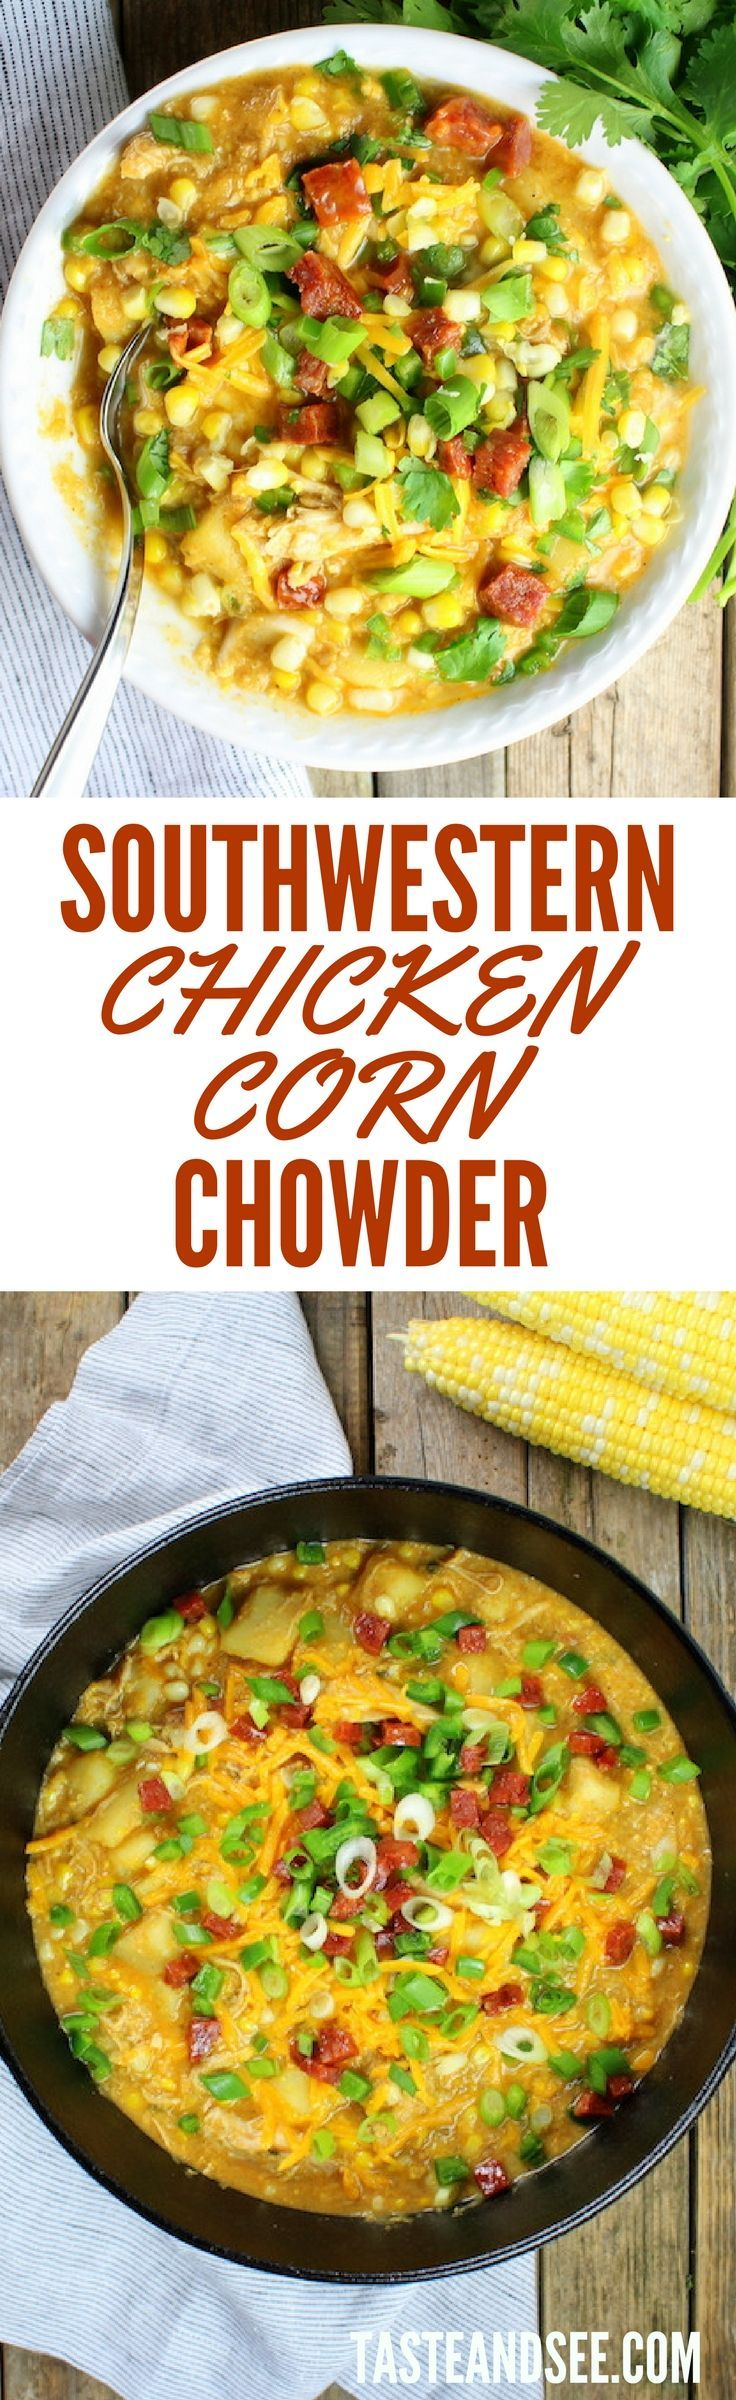 Southwestern Chicken Corn Chowder = sweet, hearty, flavorful meal all in 1 big bright sunny pot!  With Chicken, Potatoes, Corn, Chorizo, Squash, Onion, & Jalapeño. Low fat & full of tons of veggies like onions, garlic, potatoes, squash and jalapenos.  Super flavorful with zesty spices like cumin and smoky chili powder… Topped with chorizo!  #chowder http://tasteandsee.com